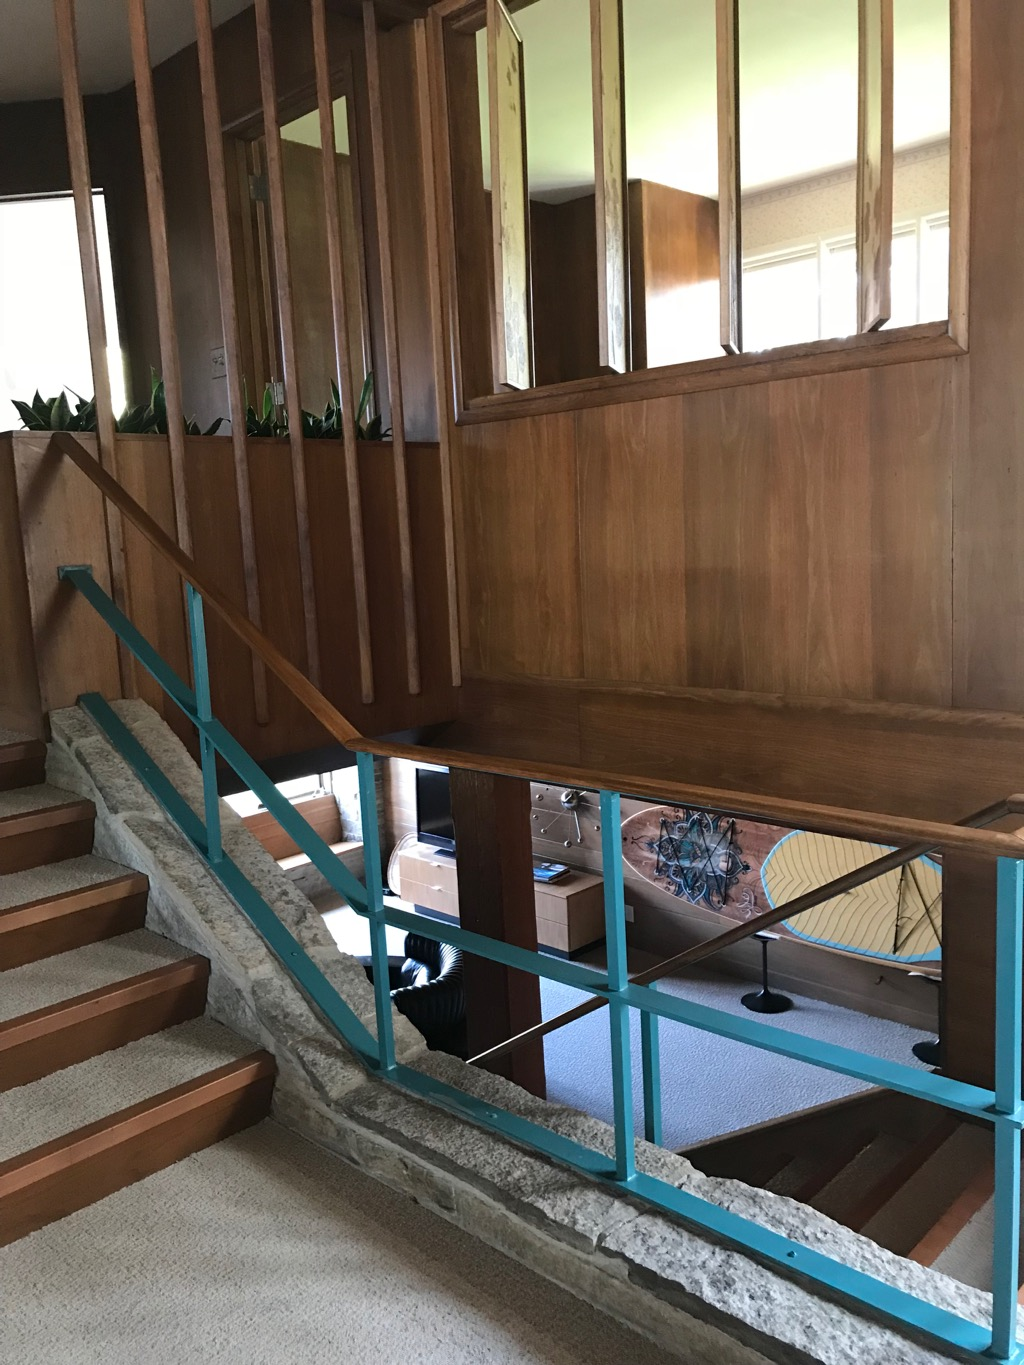 STAIRWAY WITH ORIGINAL TURQUOISE METAL RAILING